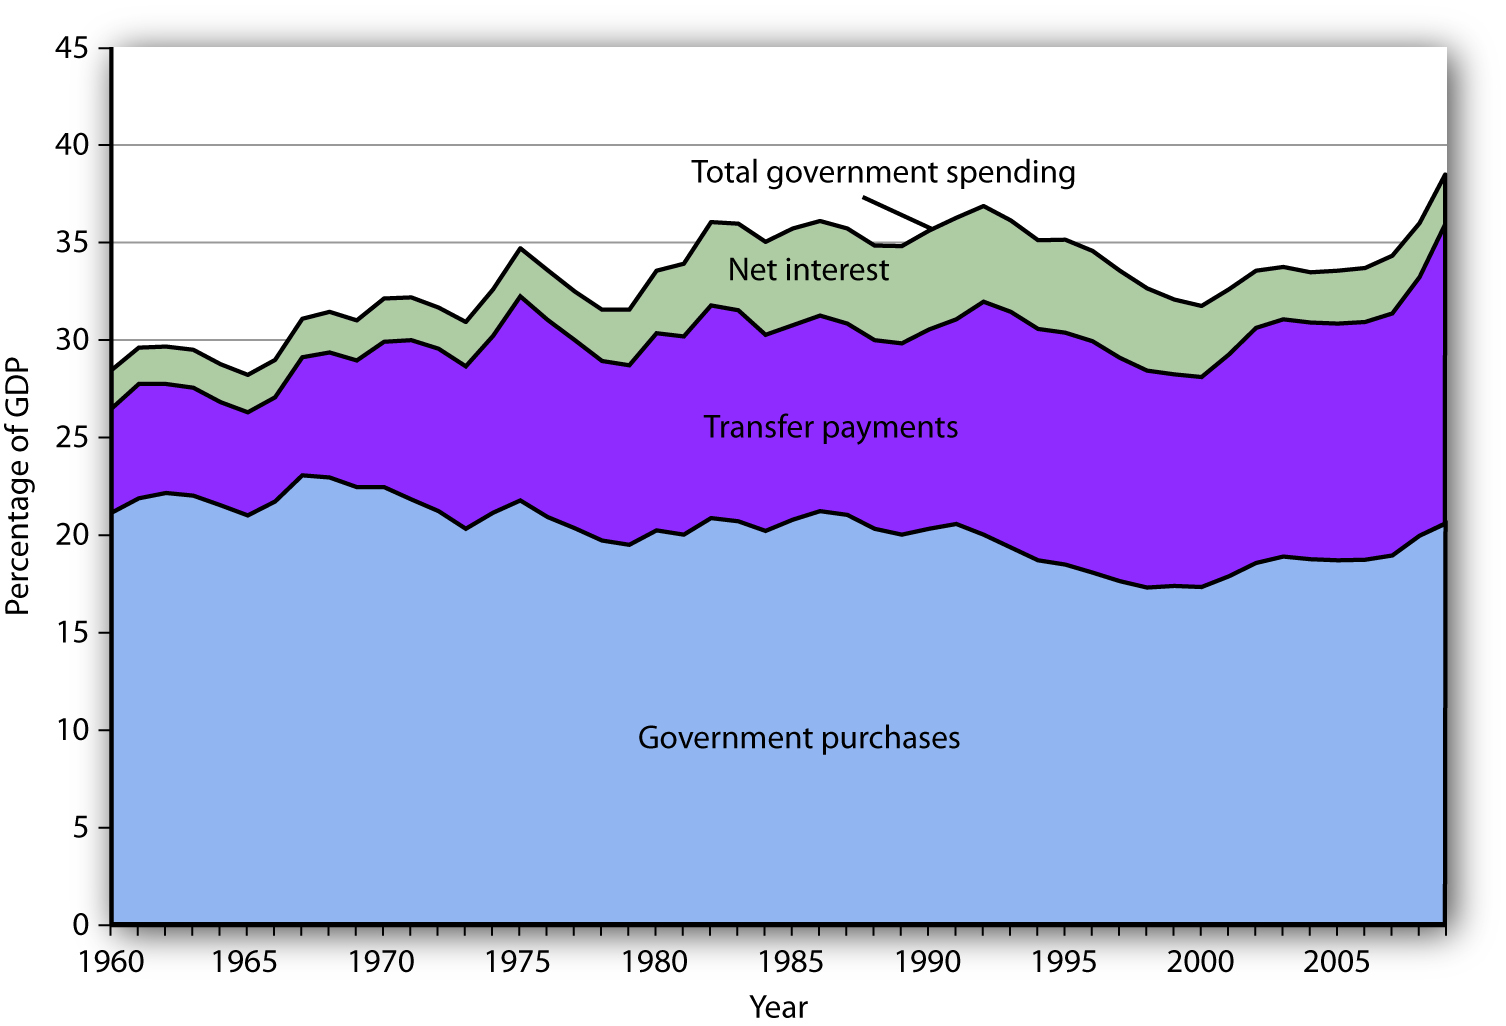 Government Spending as a Percentage of GDP. This chart shows three major categories of government spending as percentages of GDP: government purchases, transfer payments, and net interest.